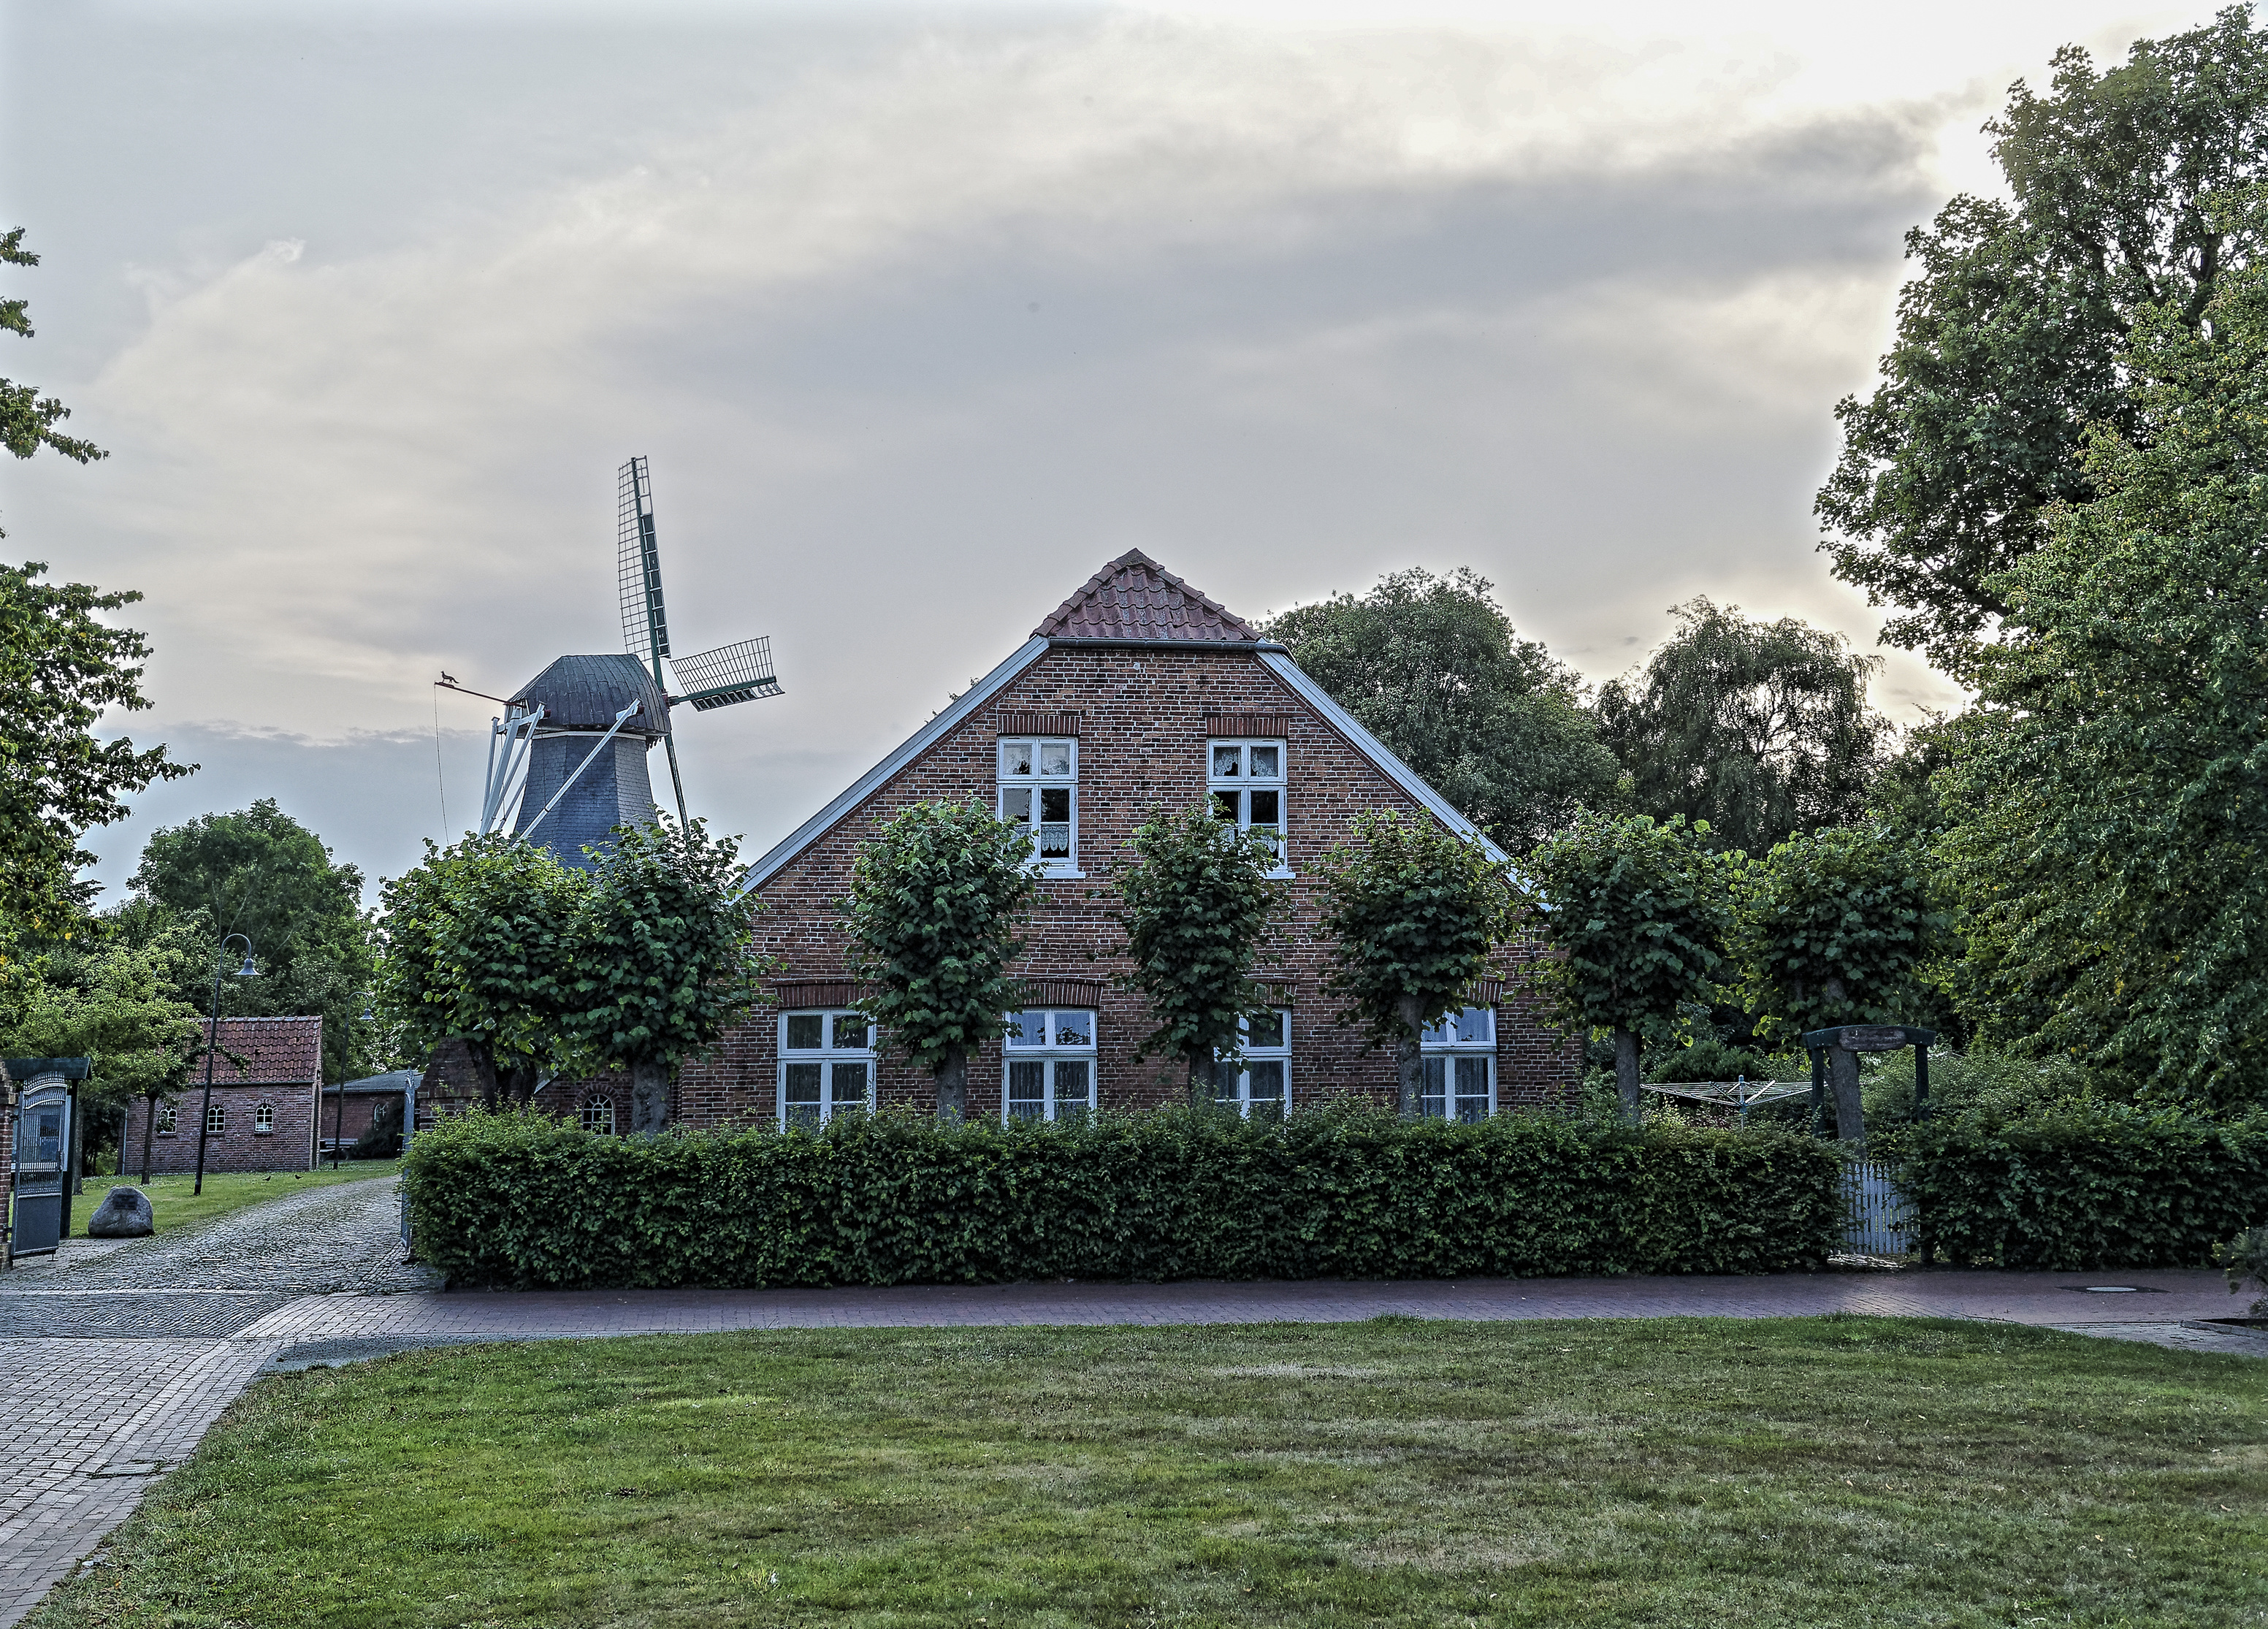 Images Germany windmills Leezdorf Mansion Lawn Cities Shrubs Building 3105x2230 Mill windmill Bush Houses